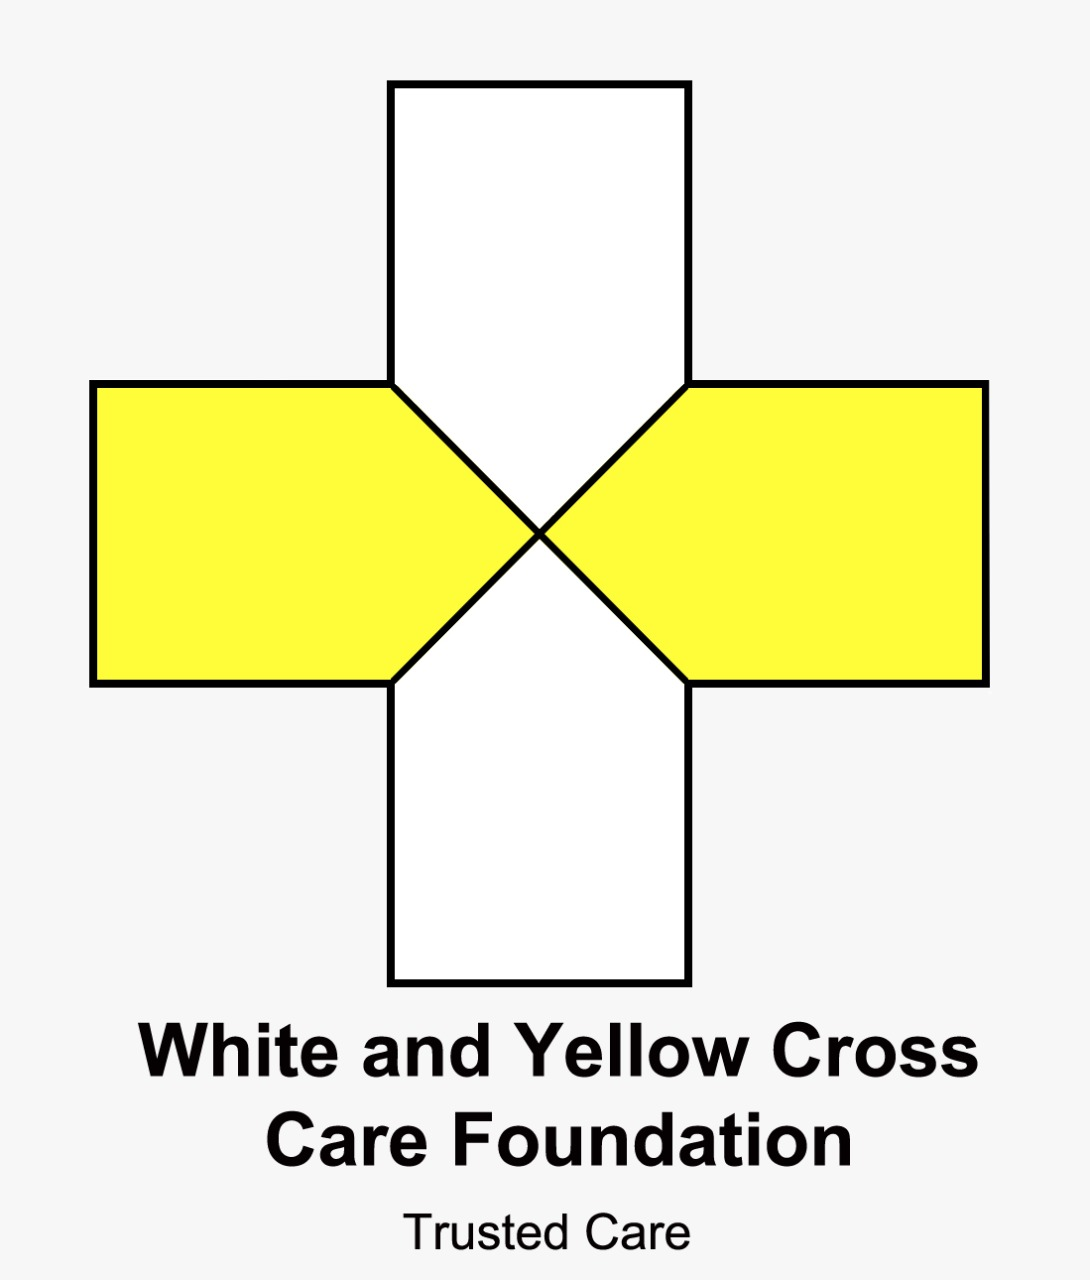 The White and Yellow Cross Care Foundation